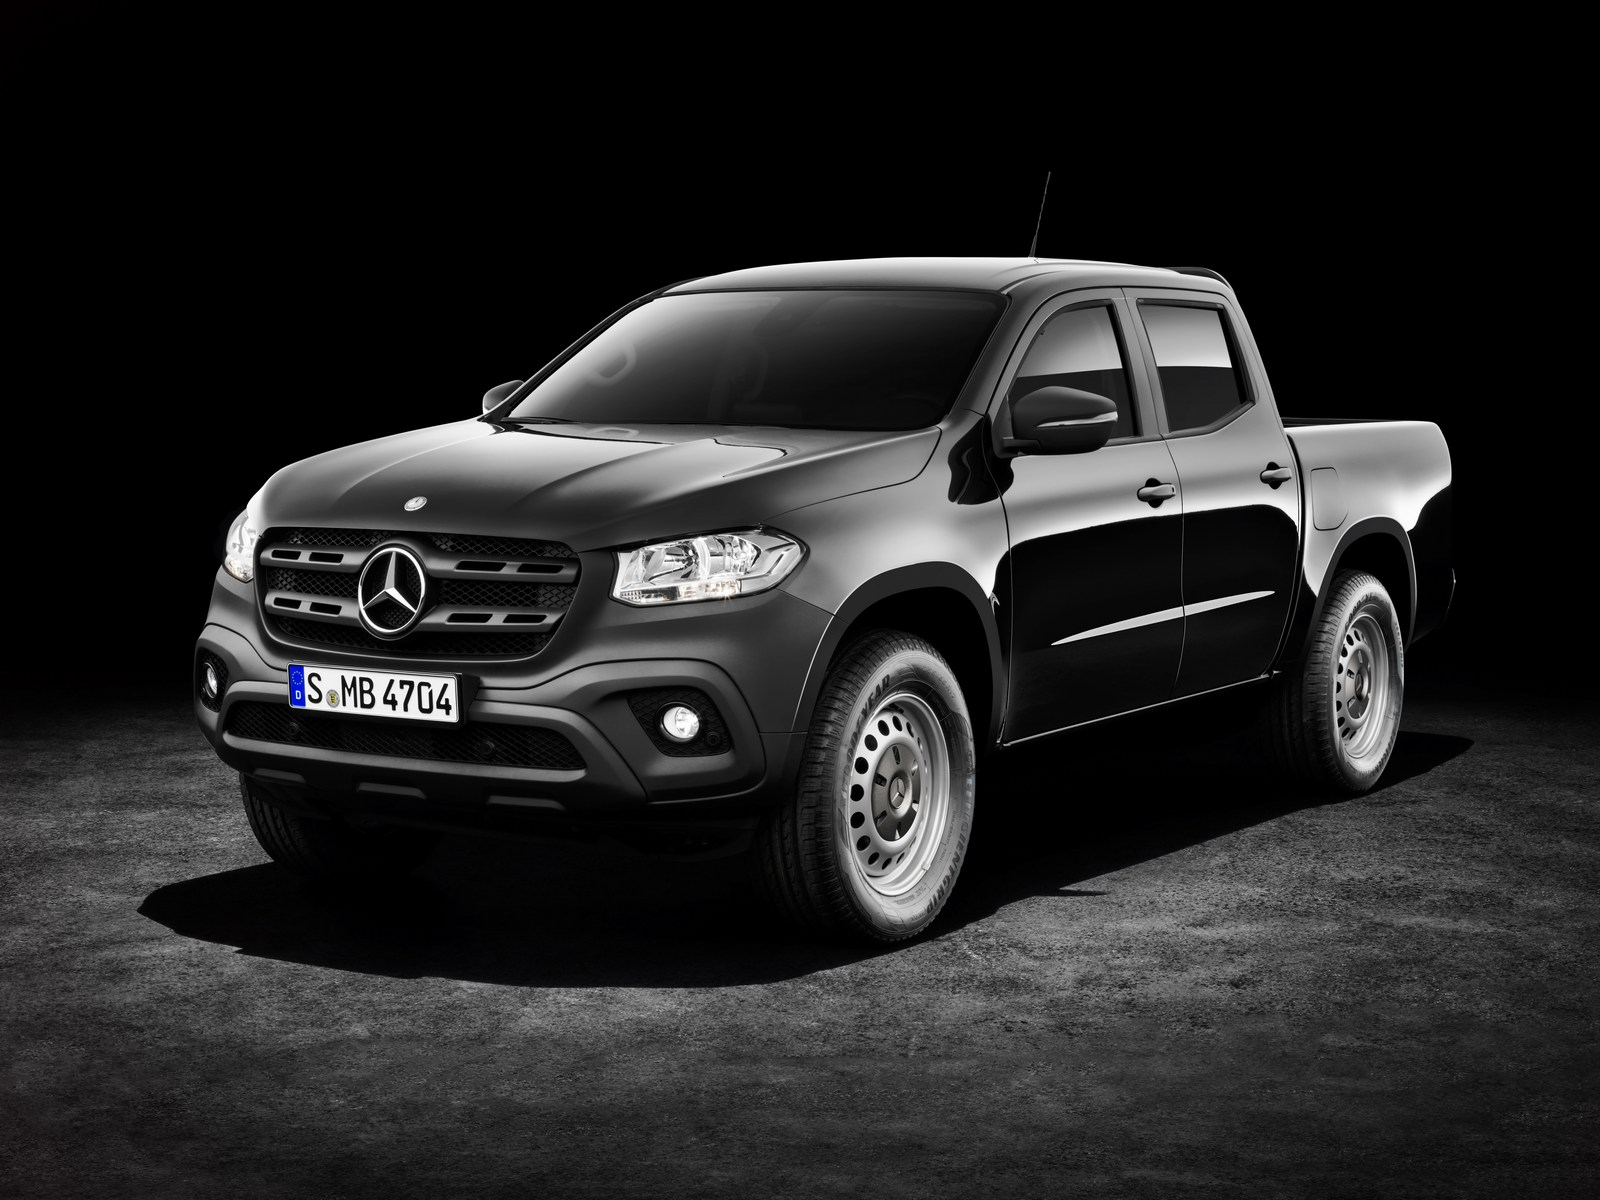 Mercedes-Benz X-Klasse – Exterieur, Kabaraschwarz metallic, Ausstattungslinie PURE   Mercedes-Benz X-Class – Exterior, kabara black metallic, design and equipment line PURE